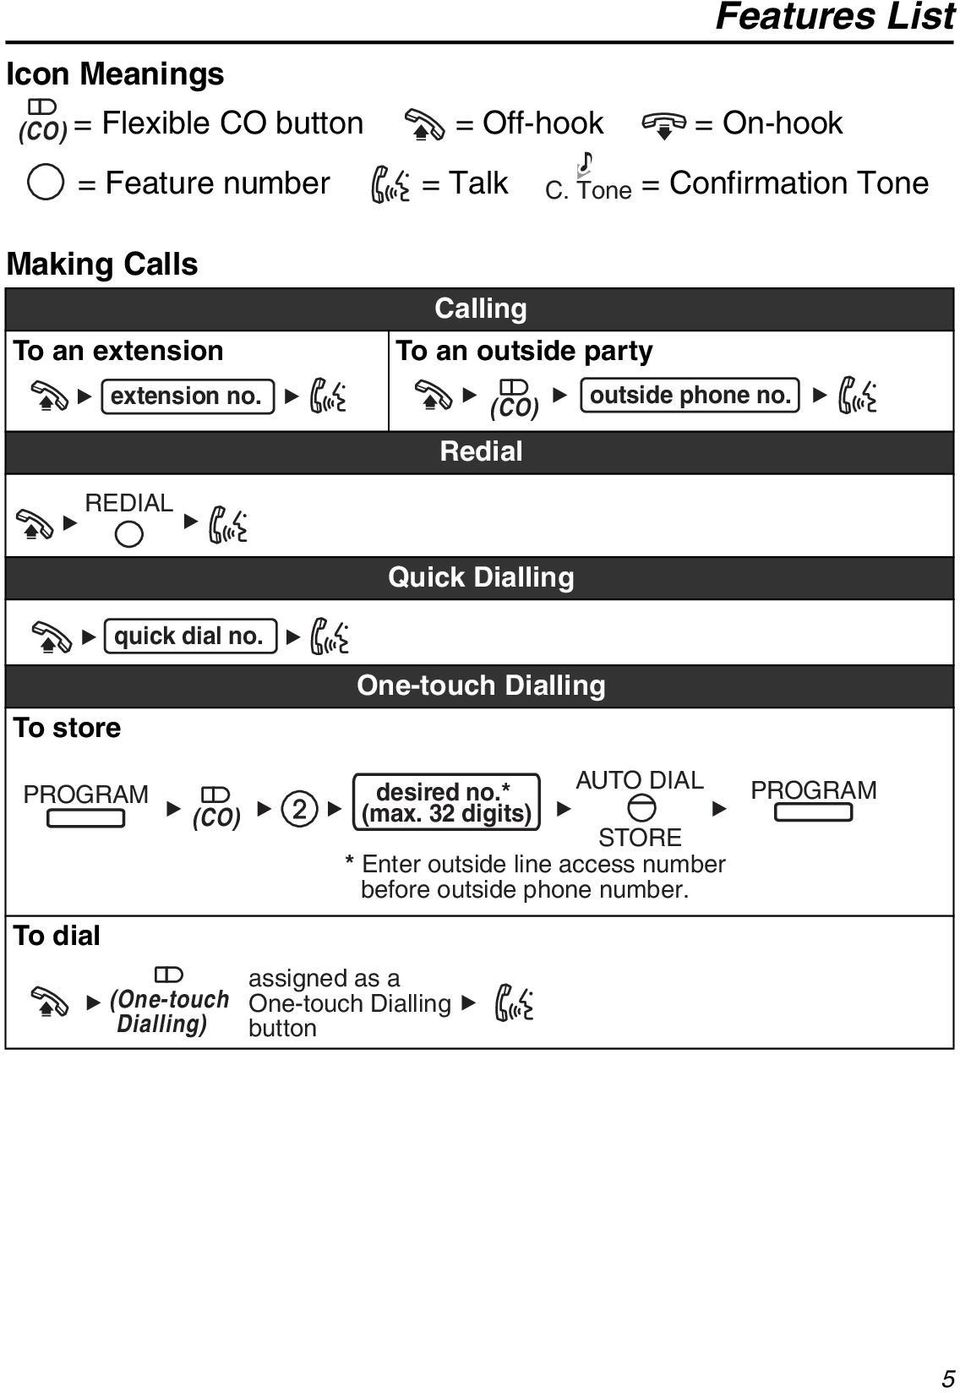 Redial Quick Dialling To store quick dial no. One-touch Dialling PROGRAM To dial (CO) (One-touch Dialling) desired no.